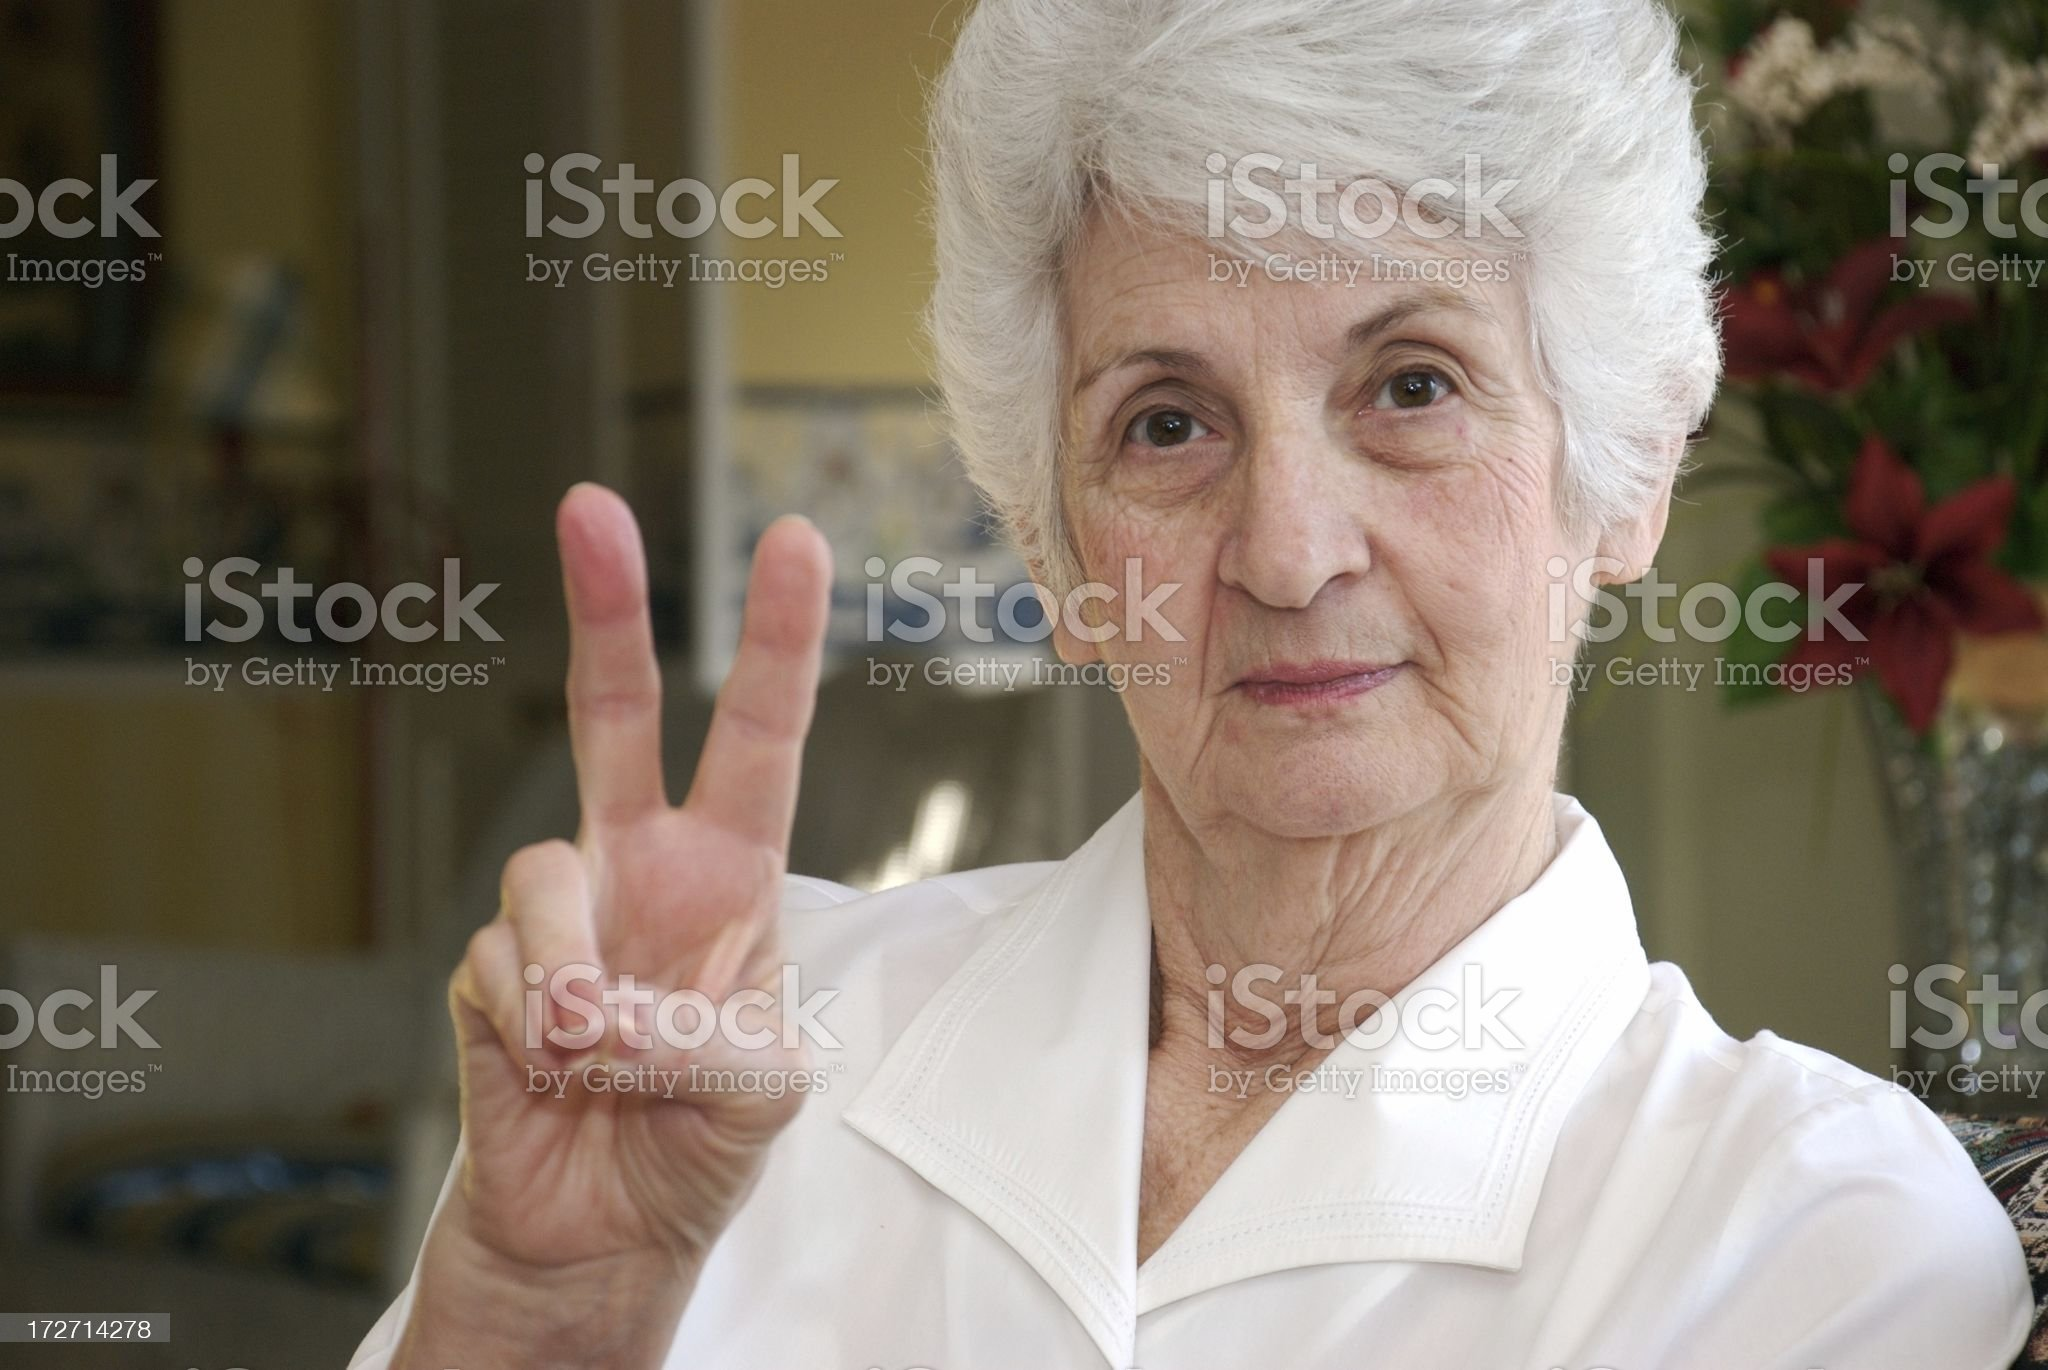 Peaceful Senior Citizen royalty-free stock photo